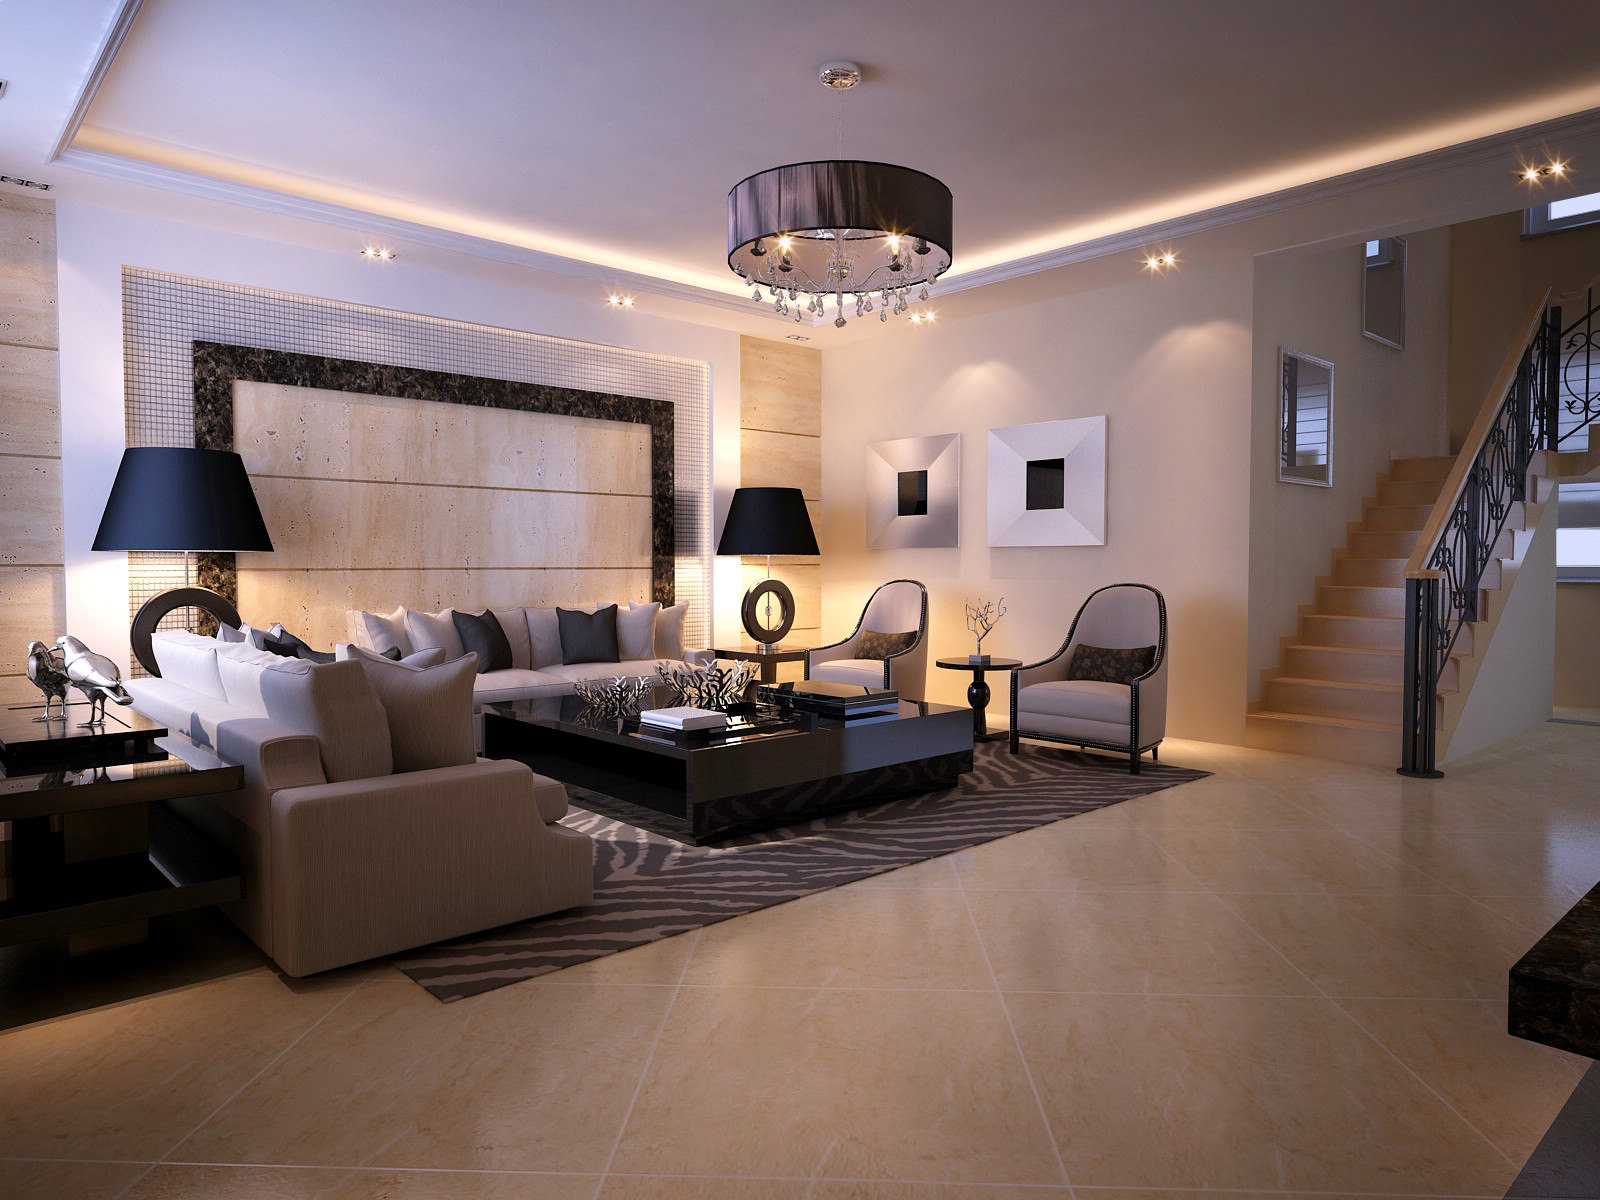 Modern Living Room With Fancy Lithing 3d Model Max 1